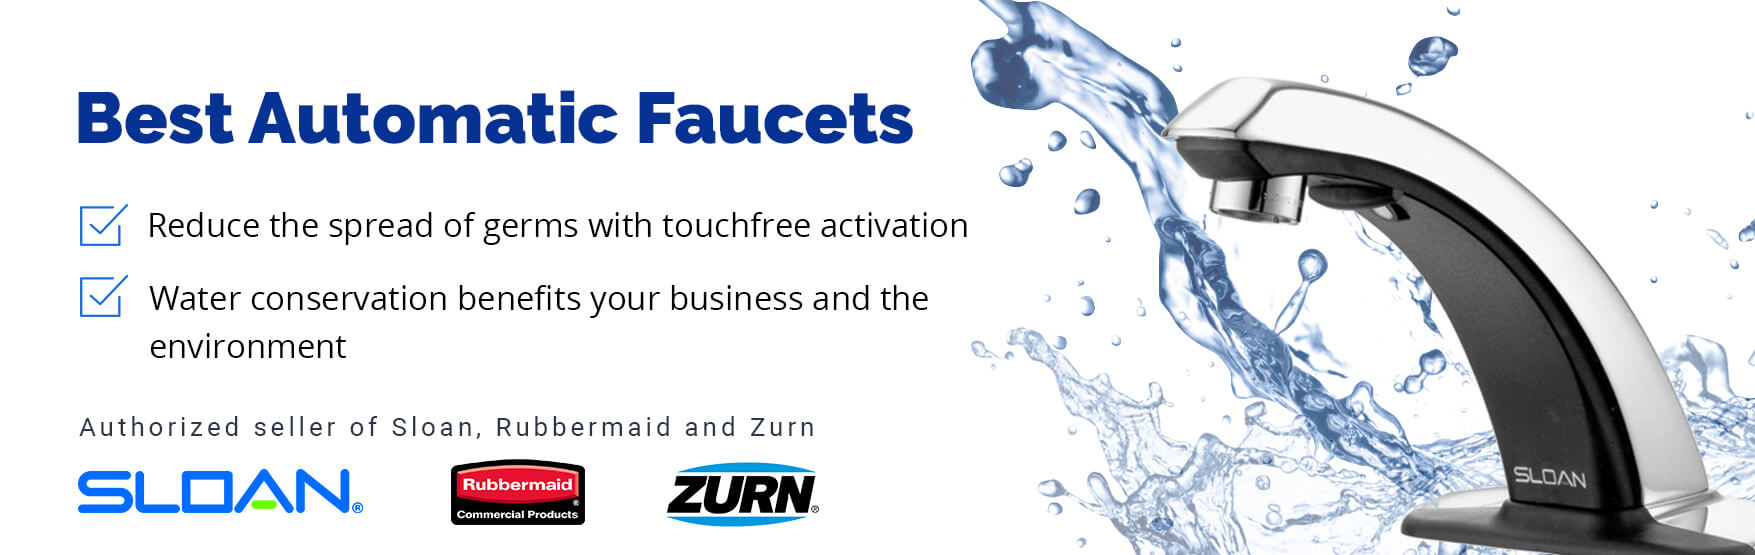 Best automatic faucets from sloan, rubbermaid and zurn